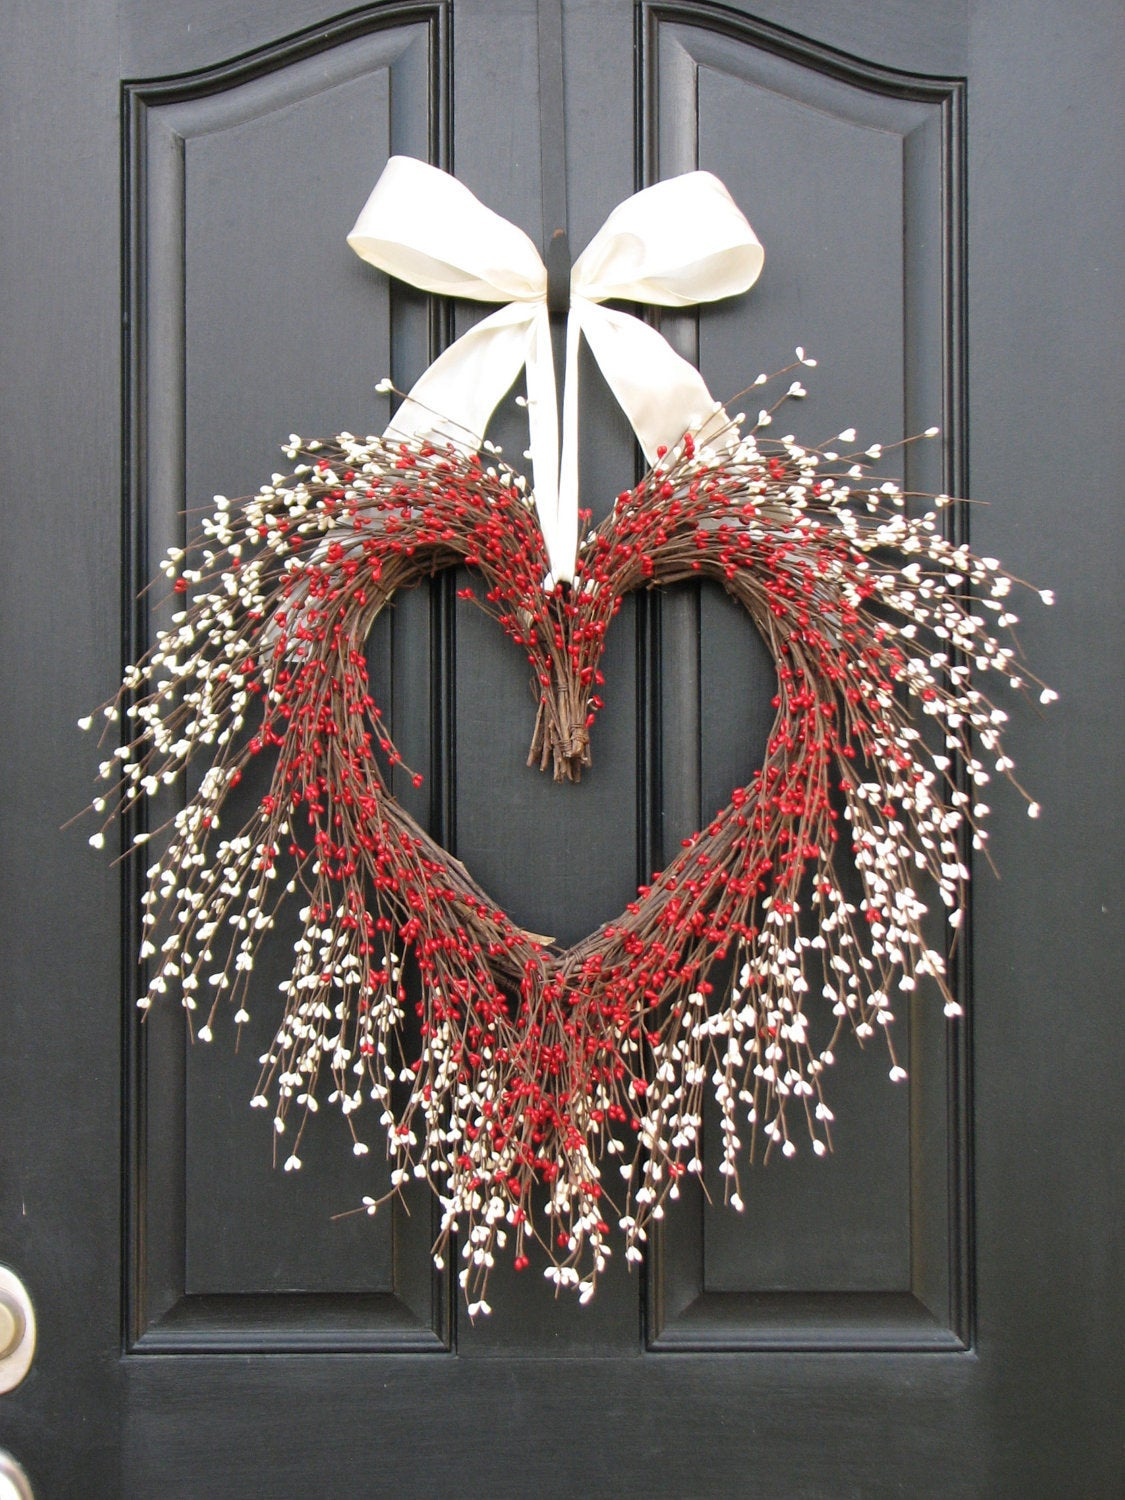 Berries & White Floral Heart